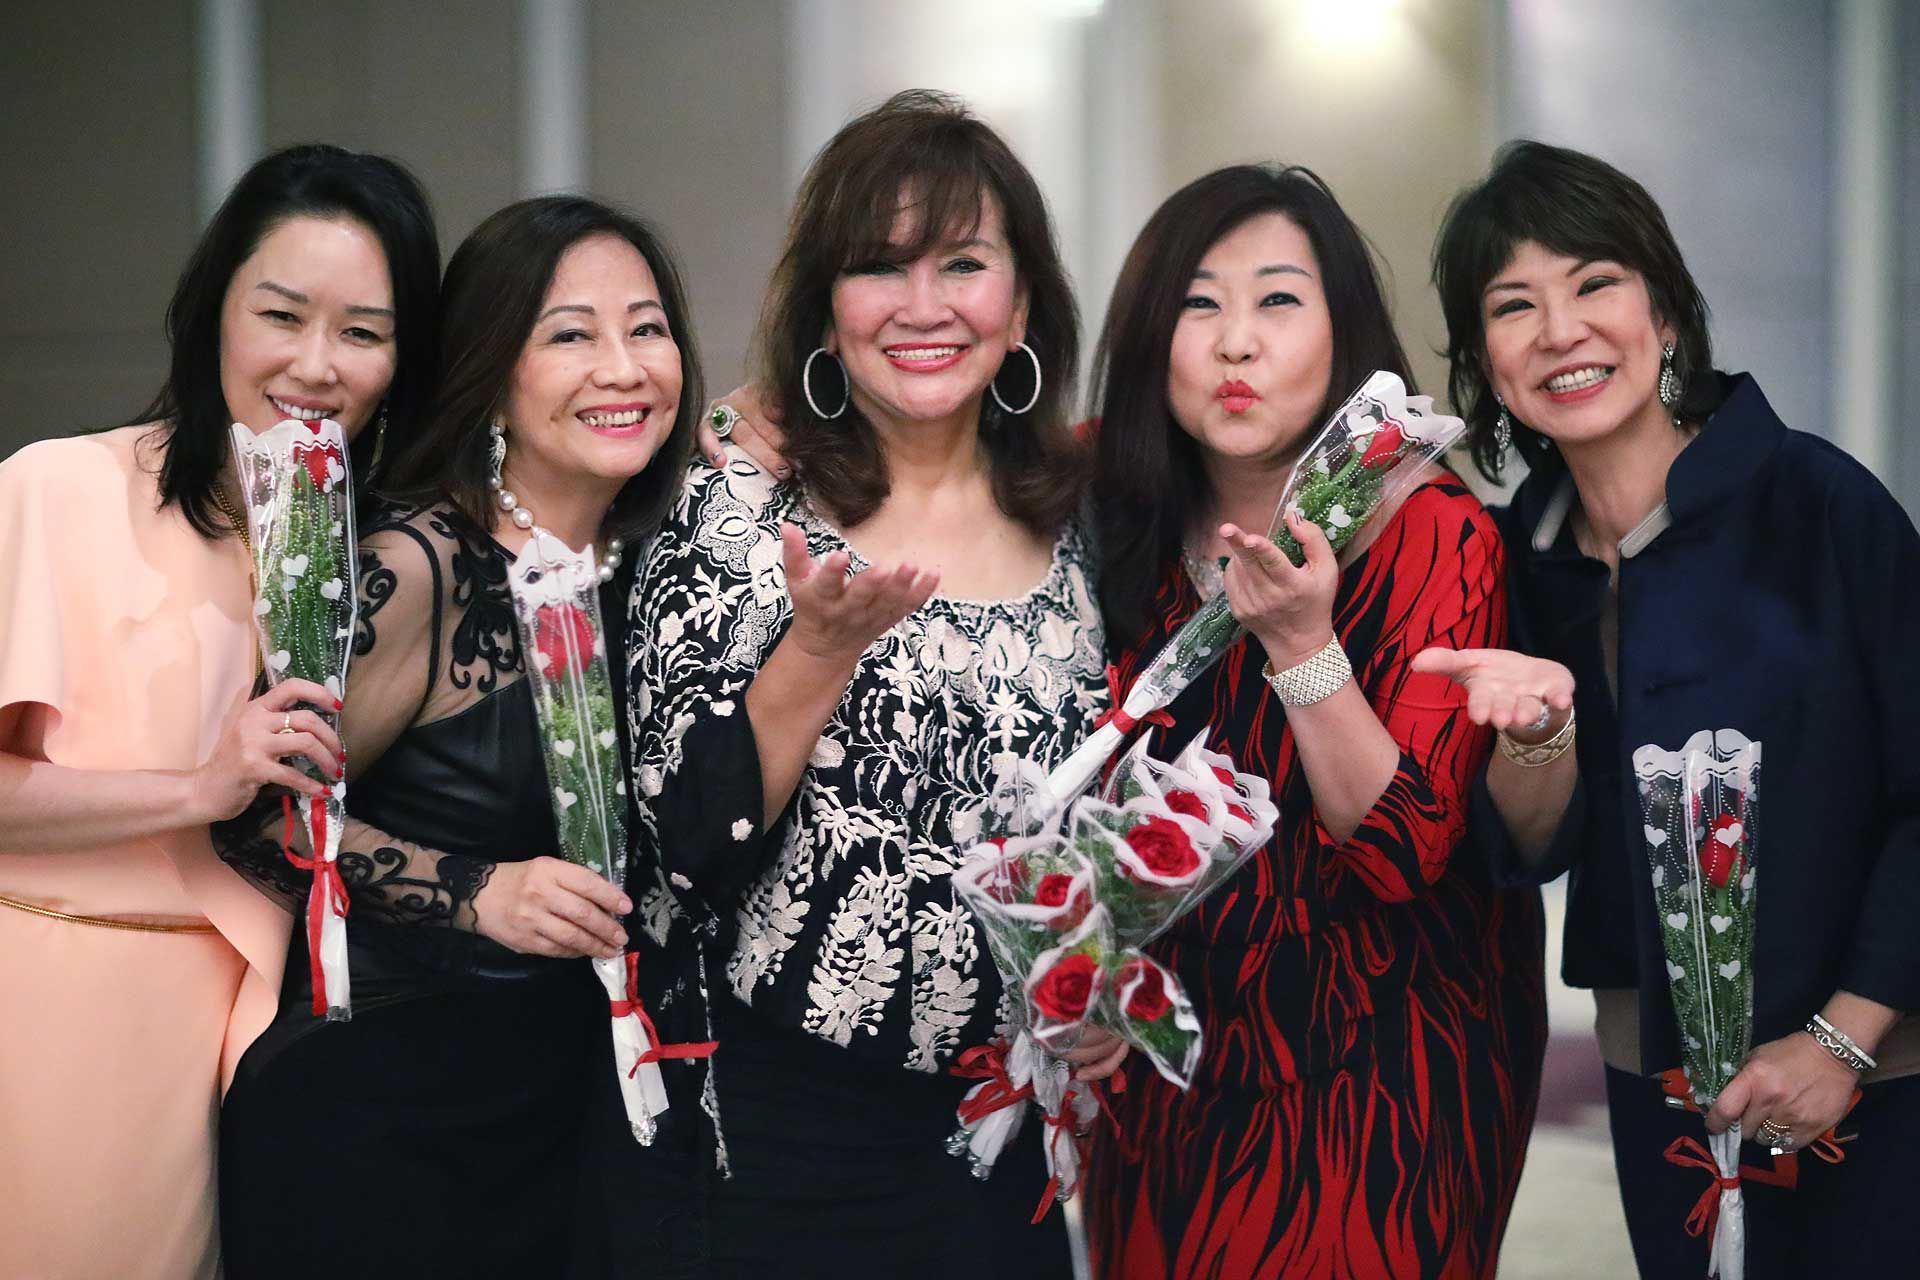 Shawna Yap, Molly Lim, Dato' Rosemarie Wee, Sharon Yap and Lim Meng Hong